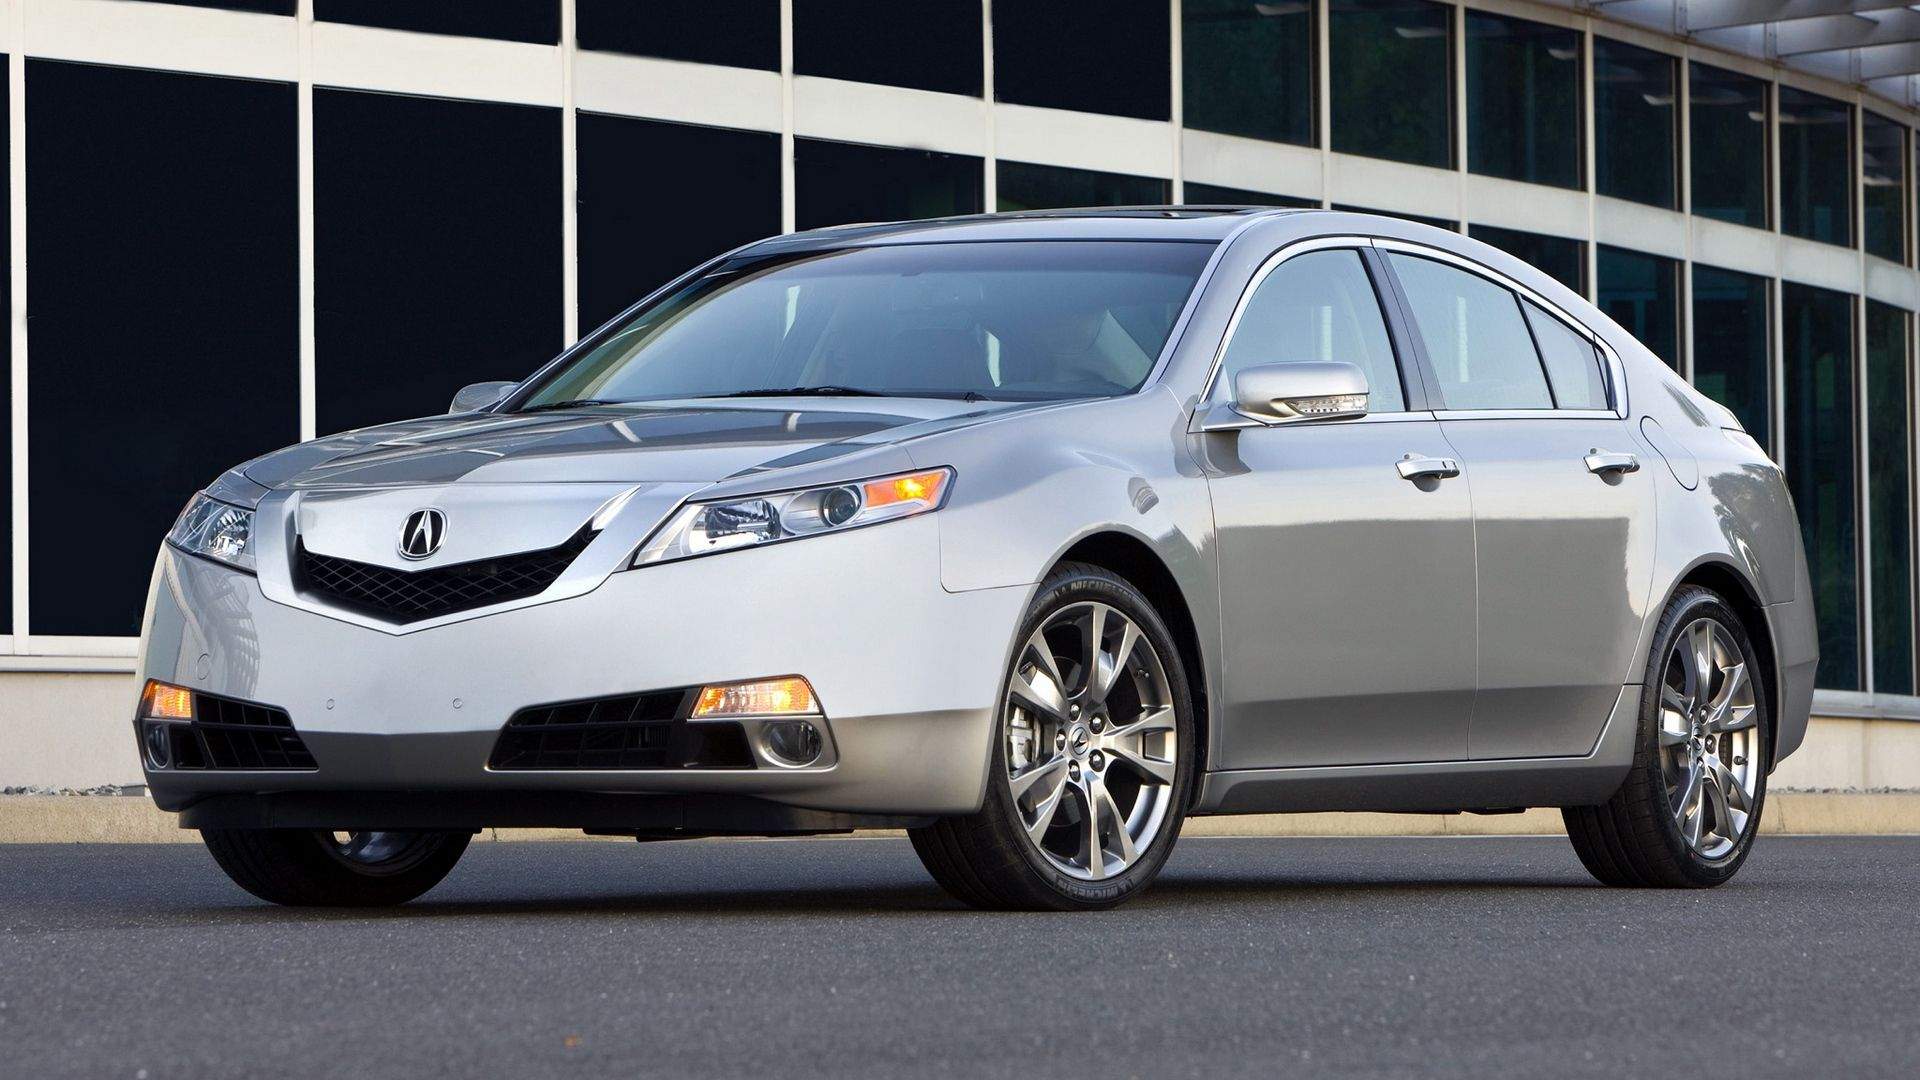 Wallpaper Silver Metallic Cars Front View 2008 Asphalt Tl Buildings Acura Style In 2020 Acura Tl Acura Car Front